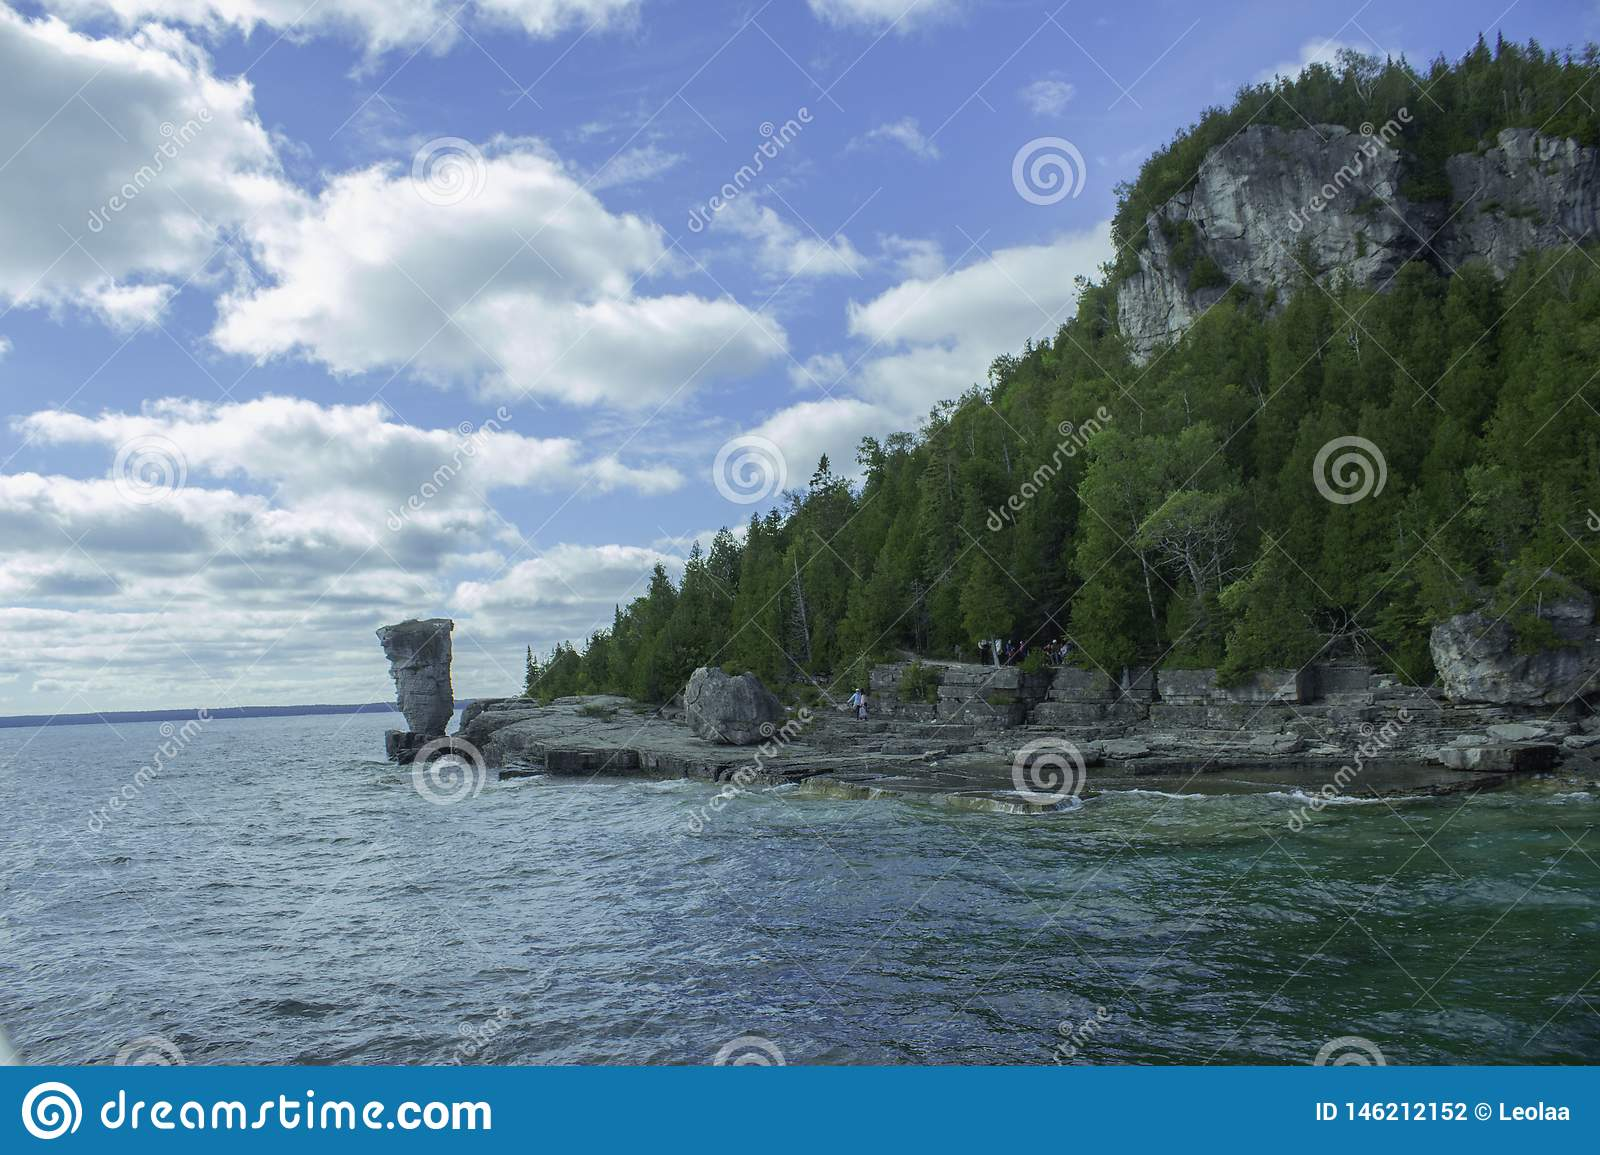 Approaching Flower Pot Island On A Sunny Day